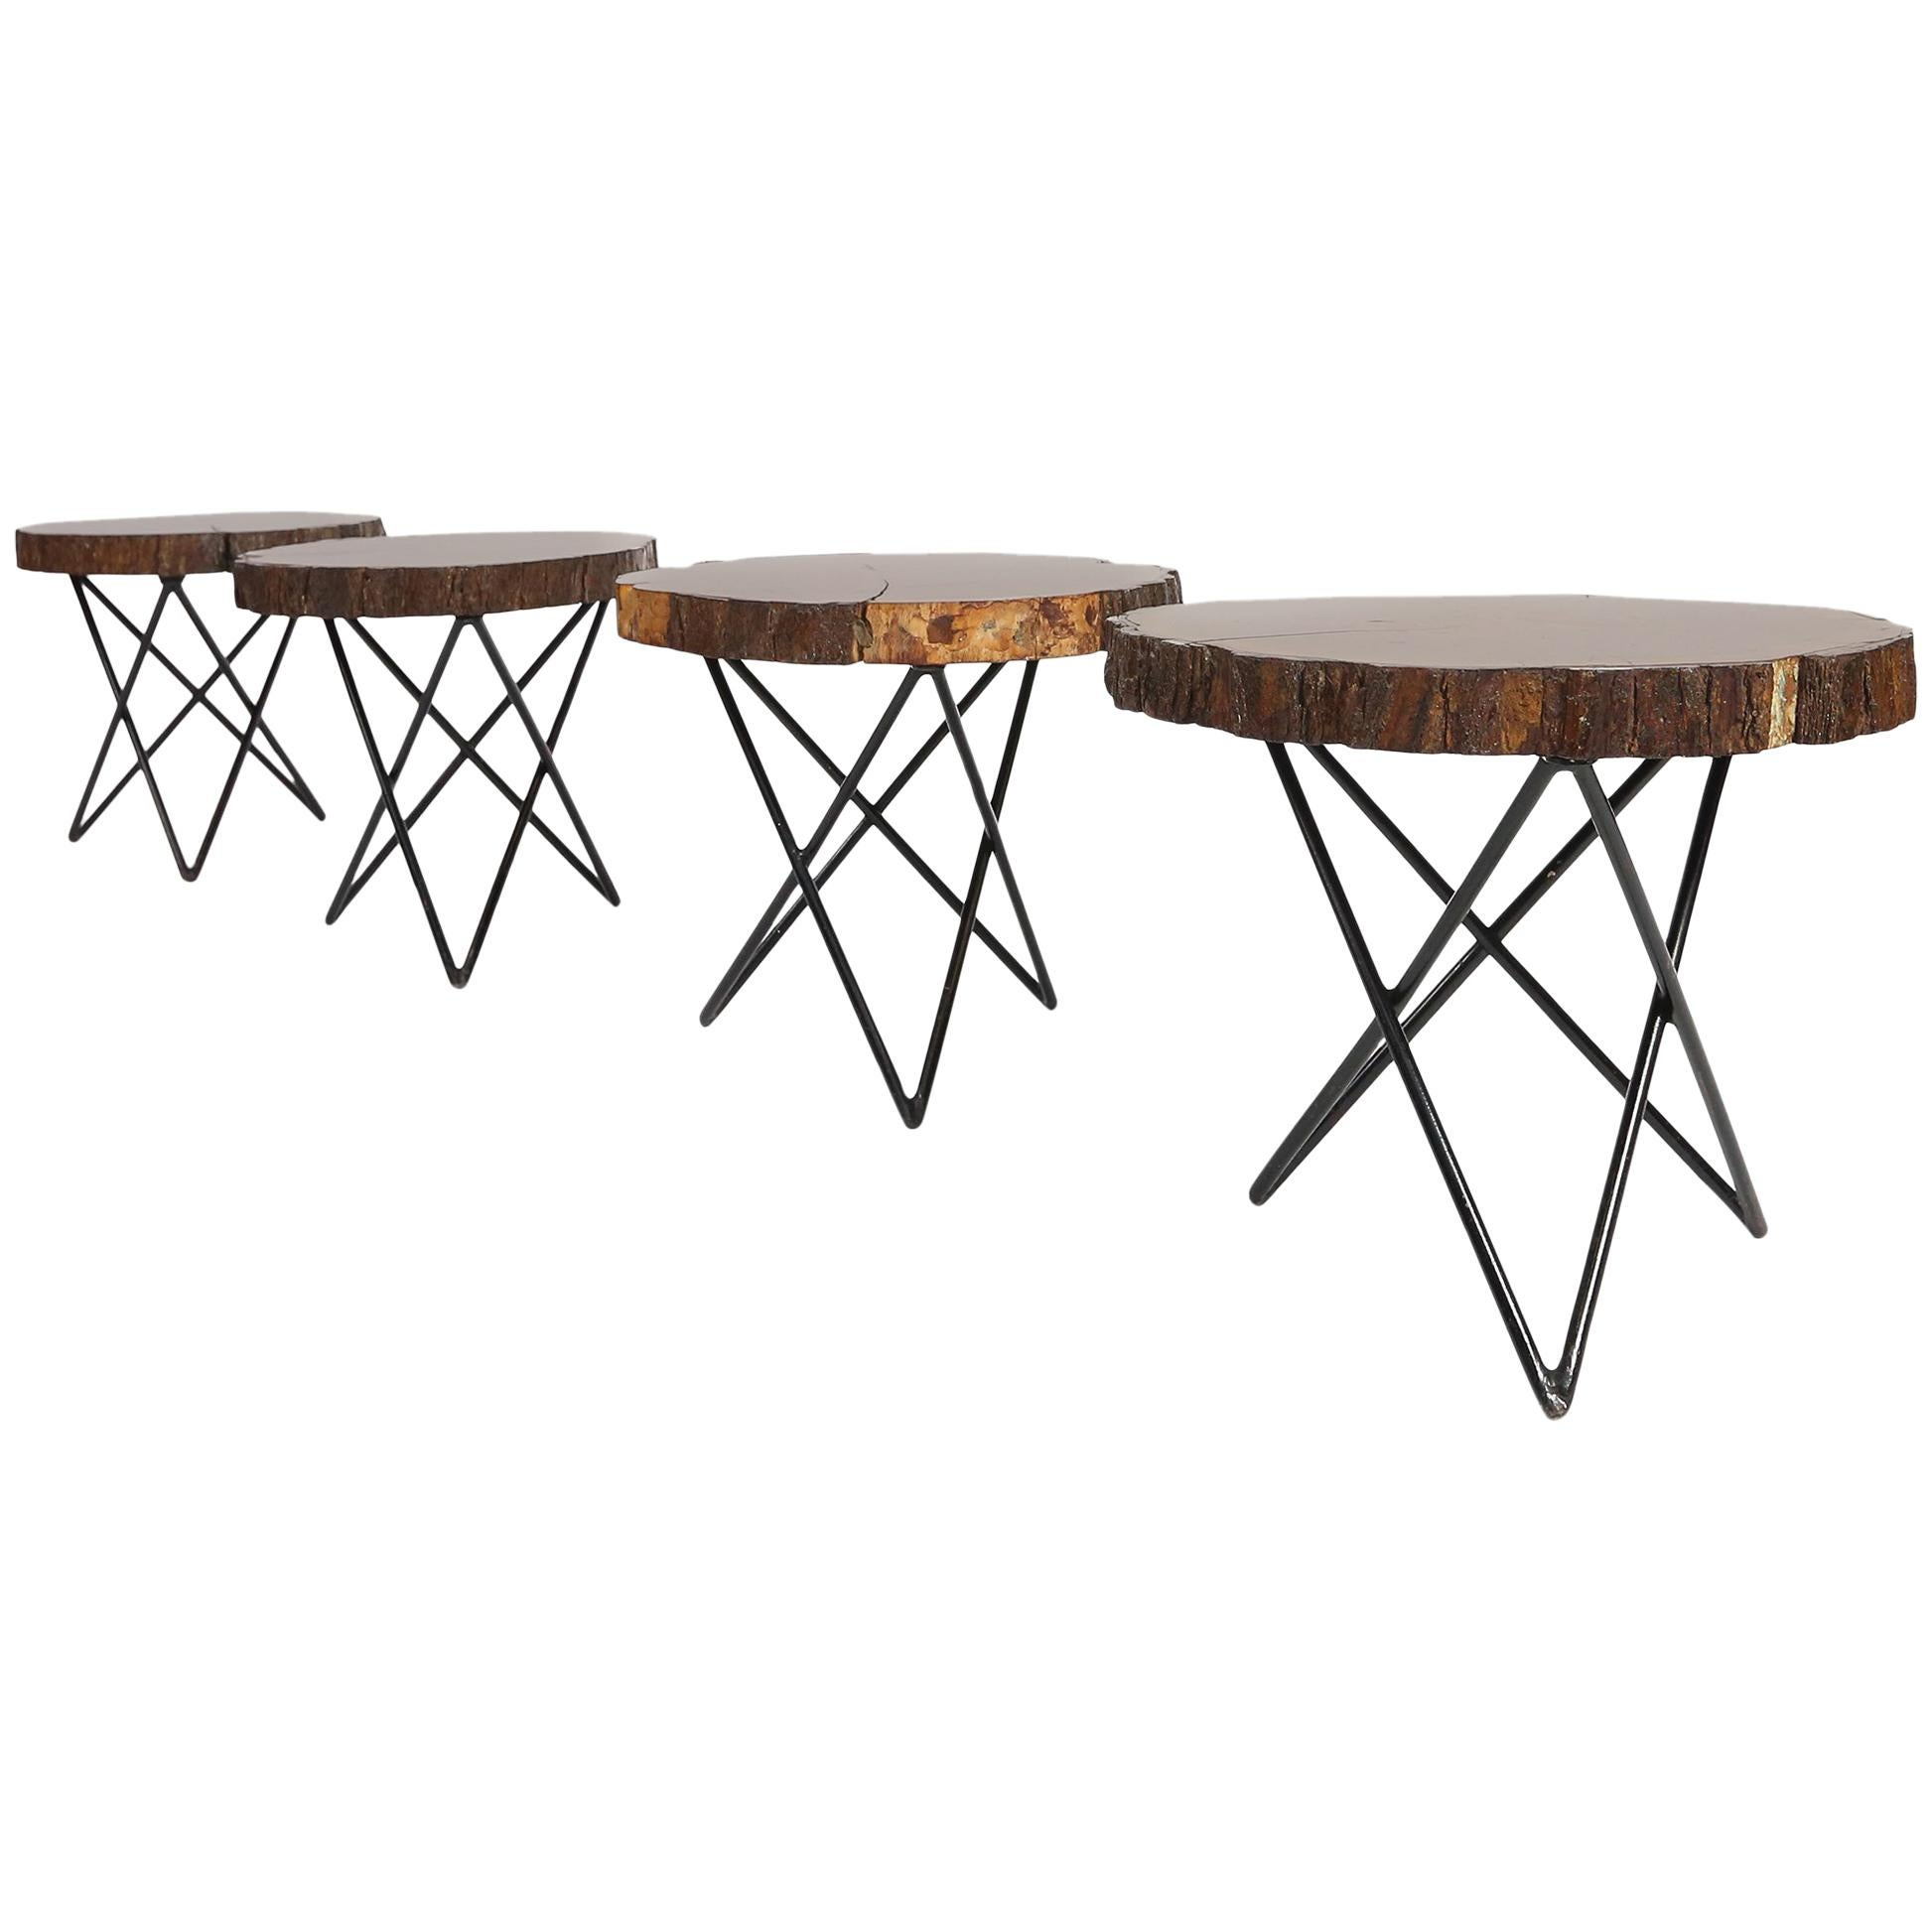 Midcentury Side or Coffee Tables with Hairpin Legs Original, France, 1950s